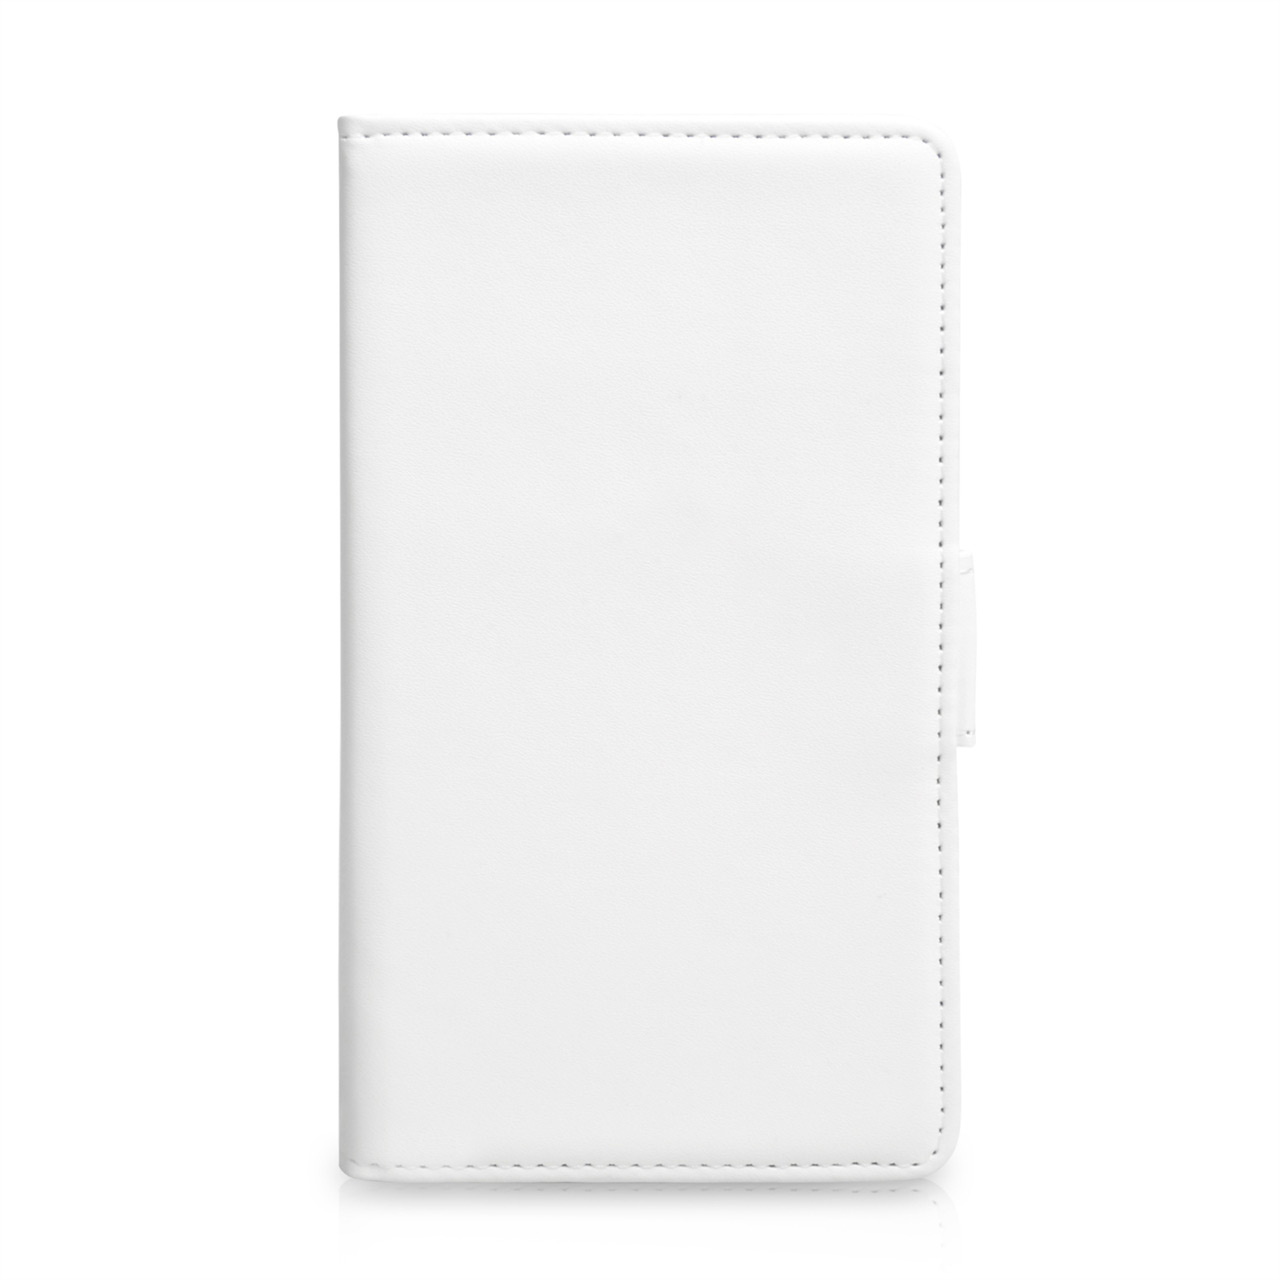 YouSave Accessories Nokia Lumia 925 Leather Effect Wallet Case - White